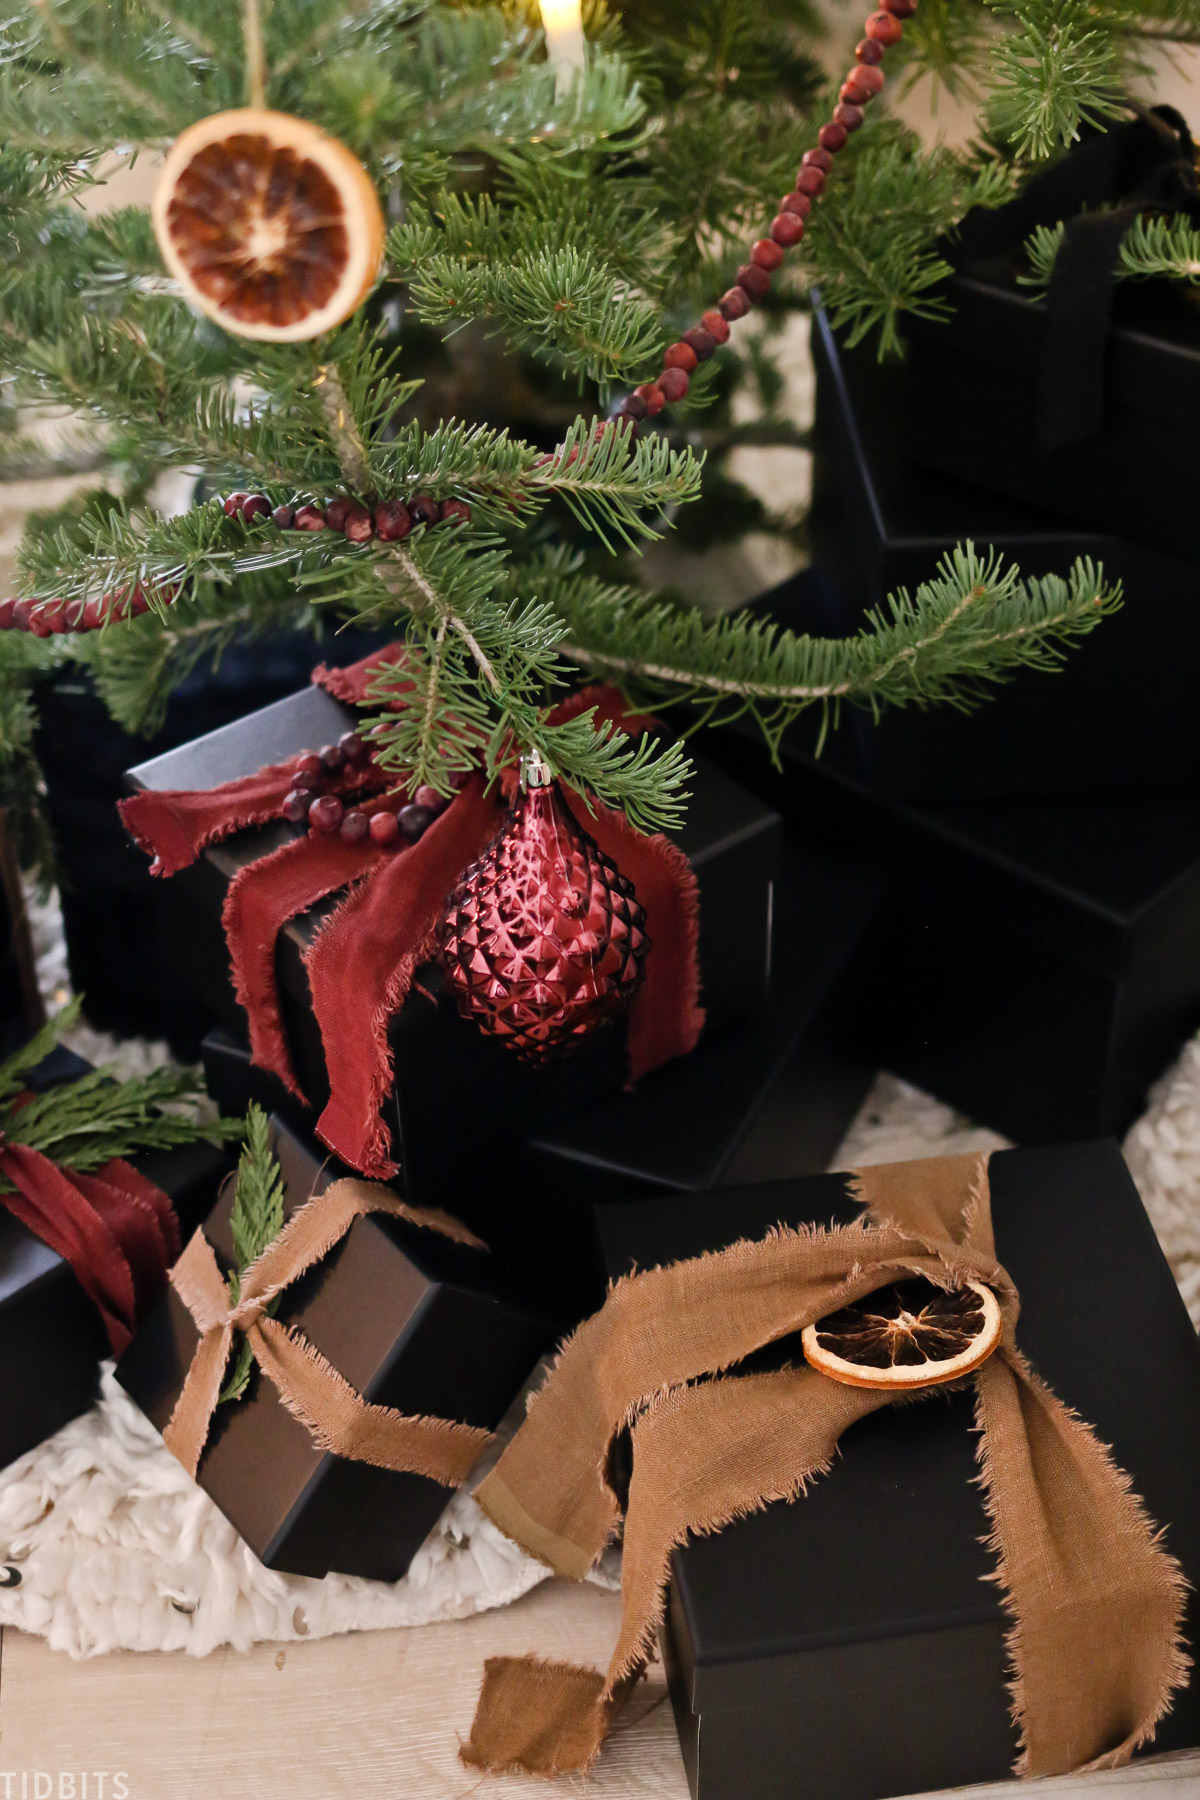 Christmas presents under a Christmas tree with orange and red linen ribbons